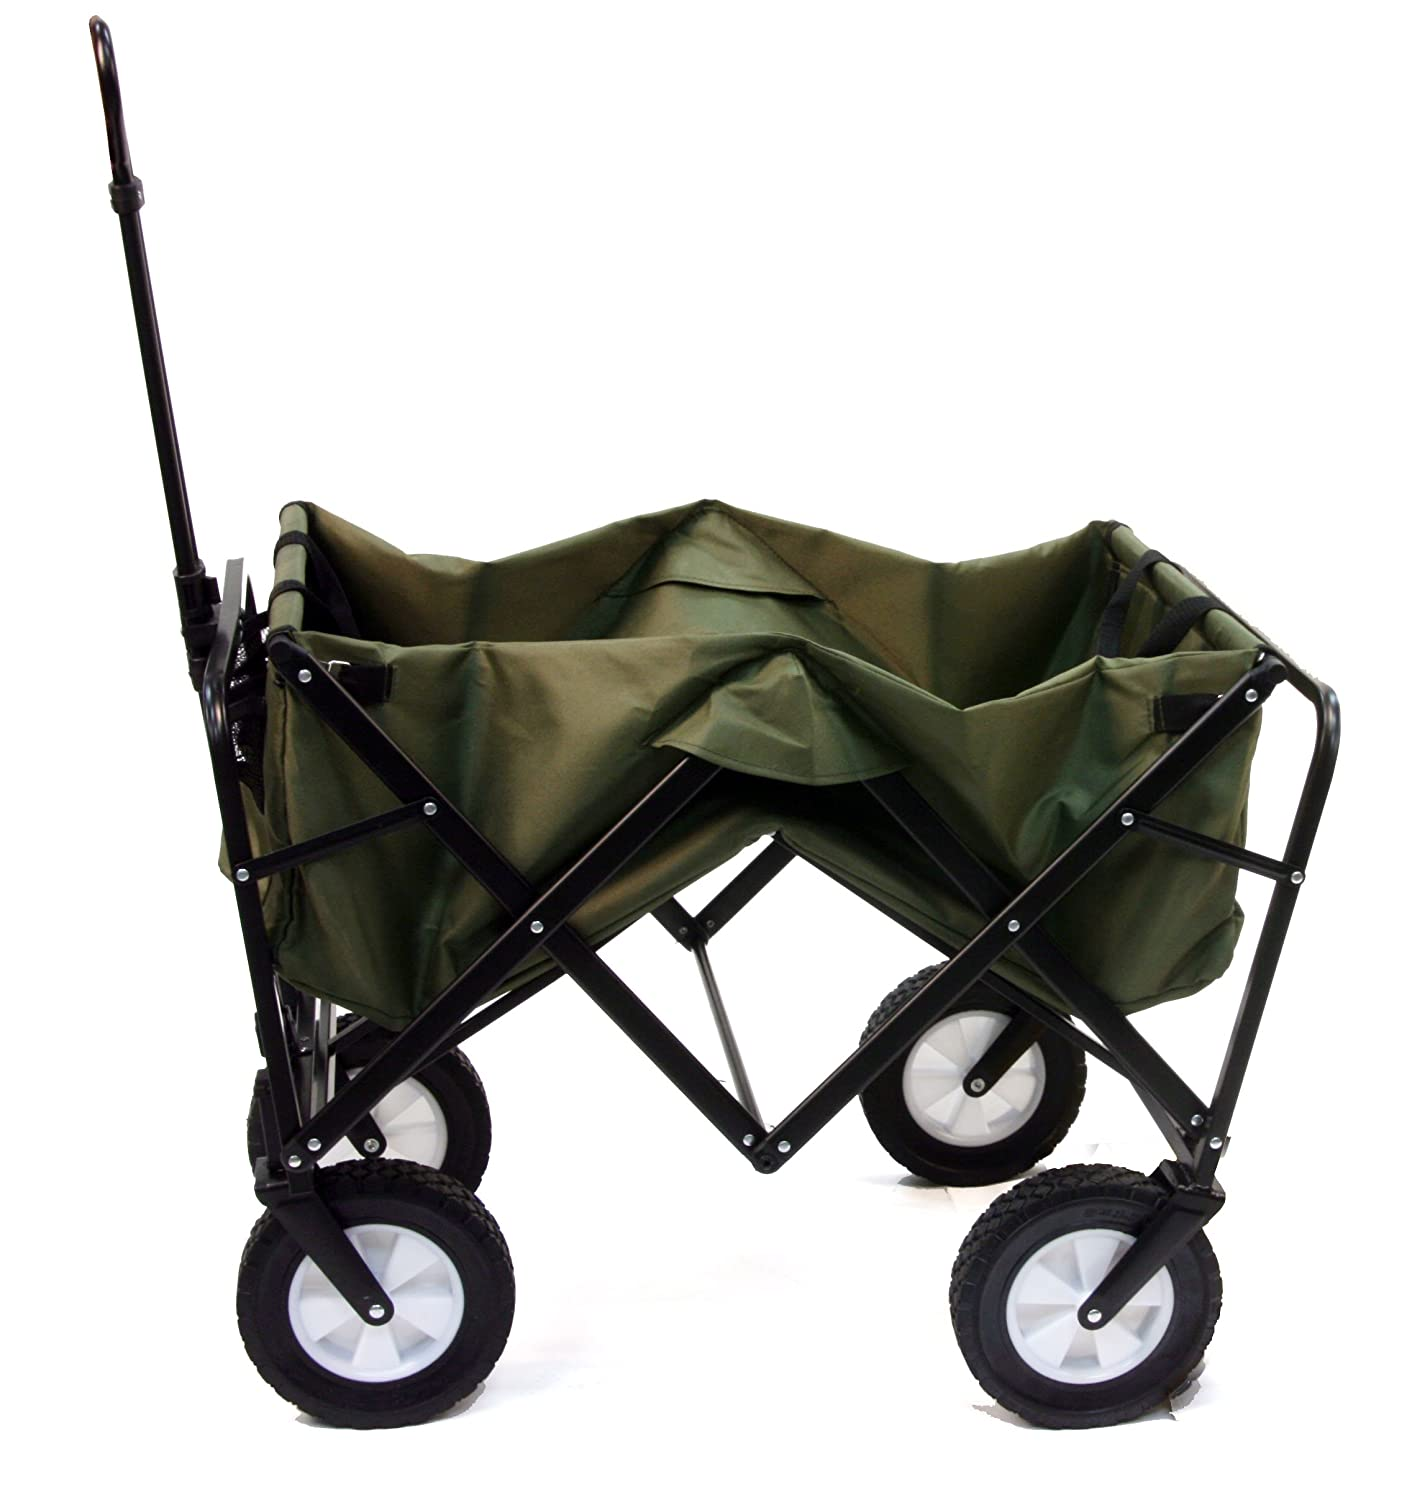 Amazon.com : Mac Sports Collapsible Folding Outdoor Utility Wagon, Green :  Garden U0026 Outdoor